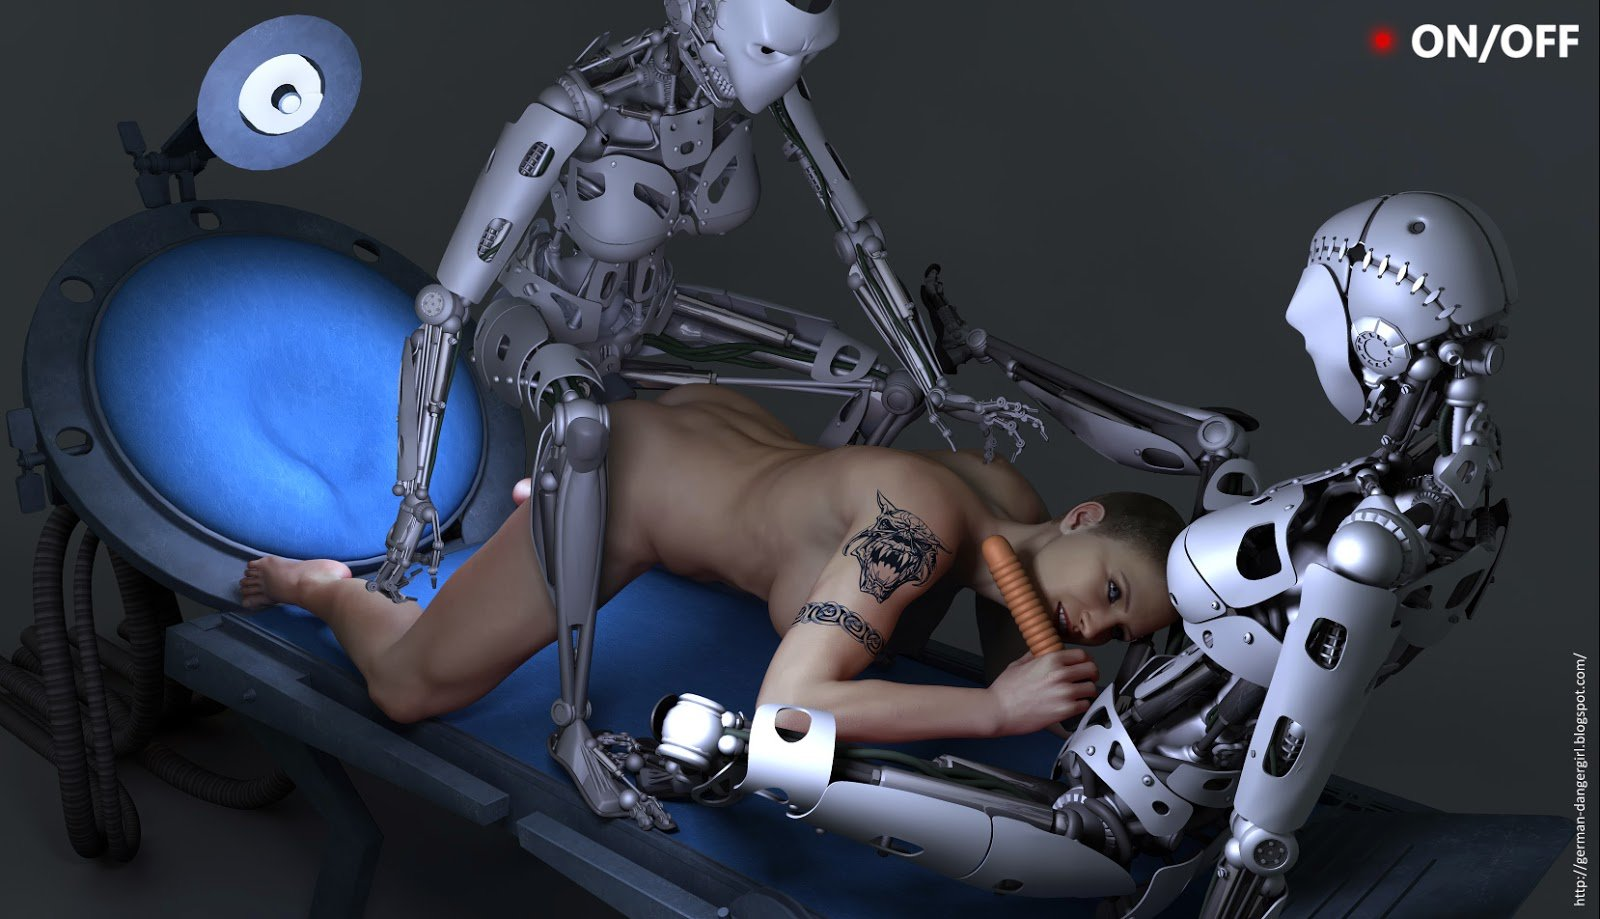 Inside World's Most Advanced Sex Robot Factory Where Ai Doll Faces Move Like Humans